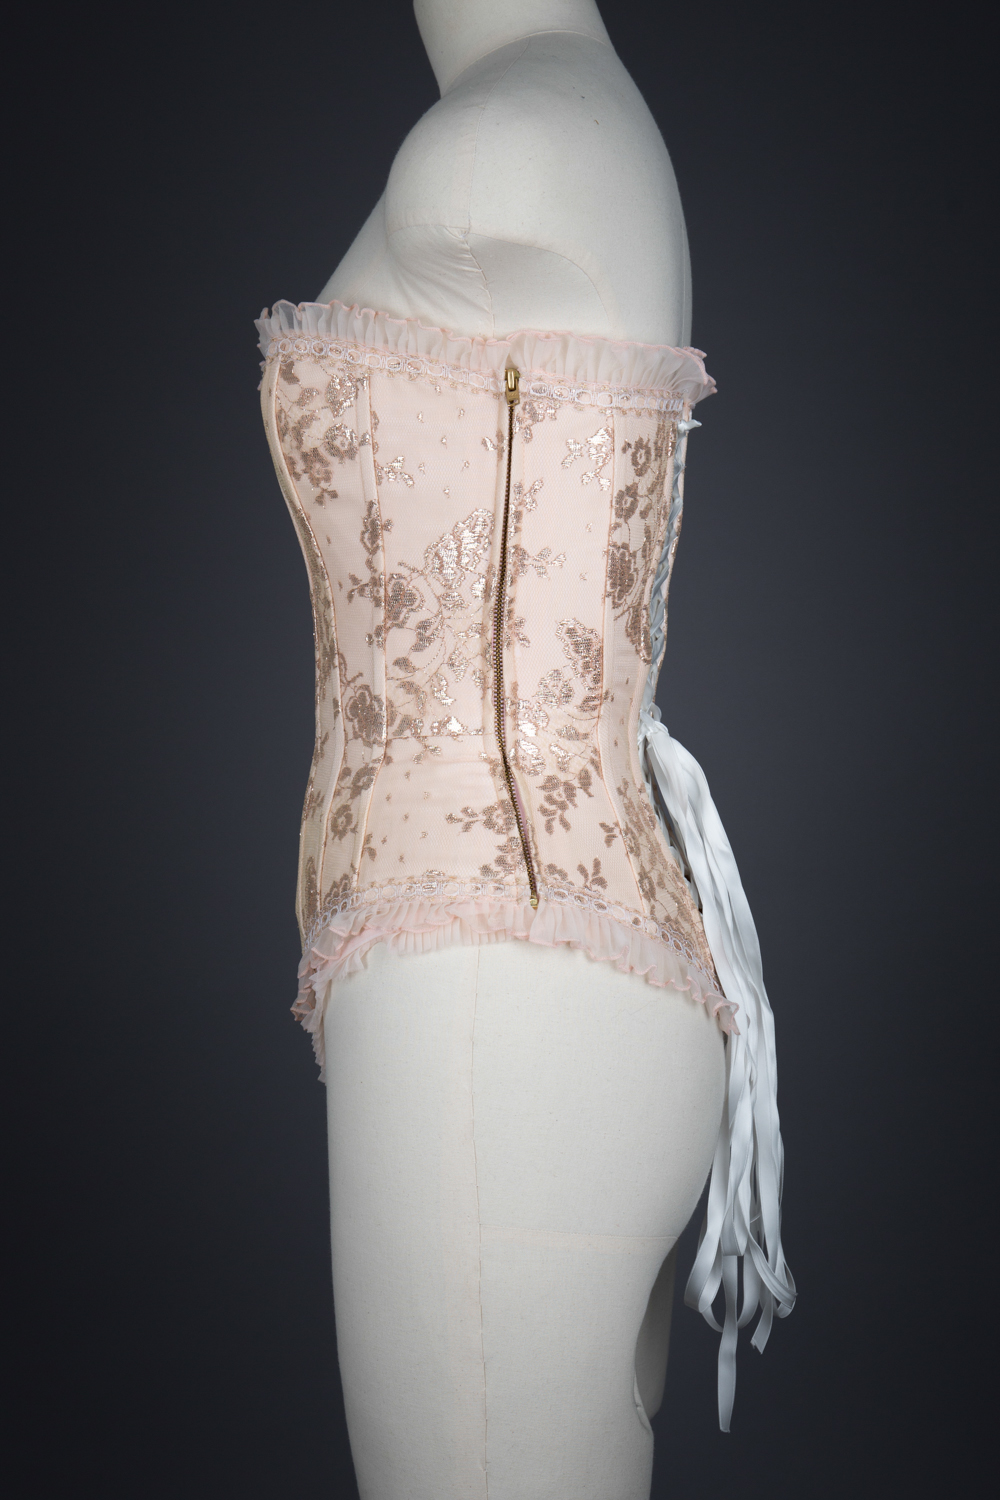 Peach Nylon With Metallic Lace Overlay Corset & Thong by Fifi Chachnil, 1998, France. The Underpinnings Museum. Photography by Tigz Rice.